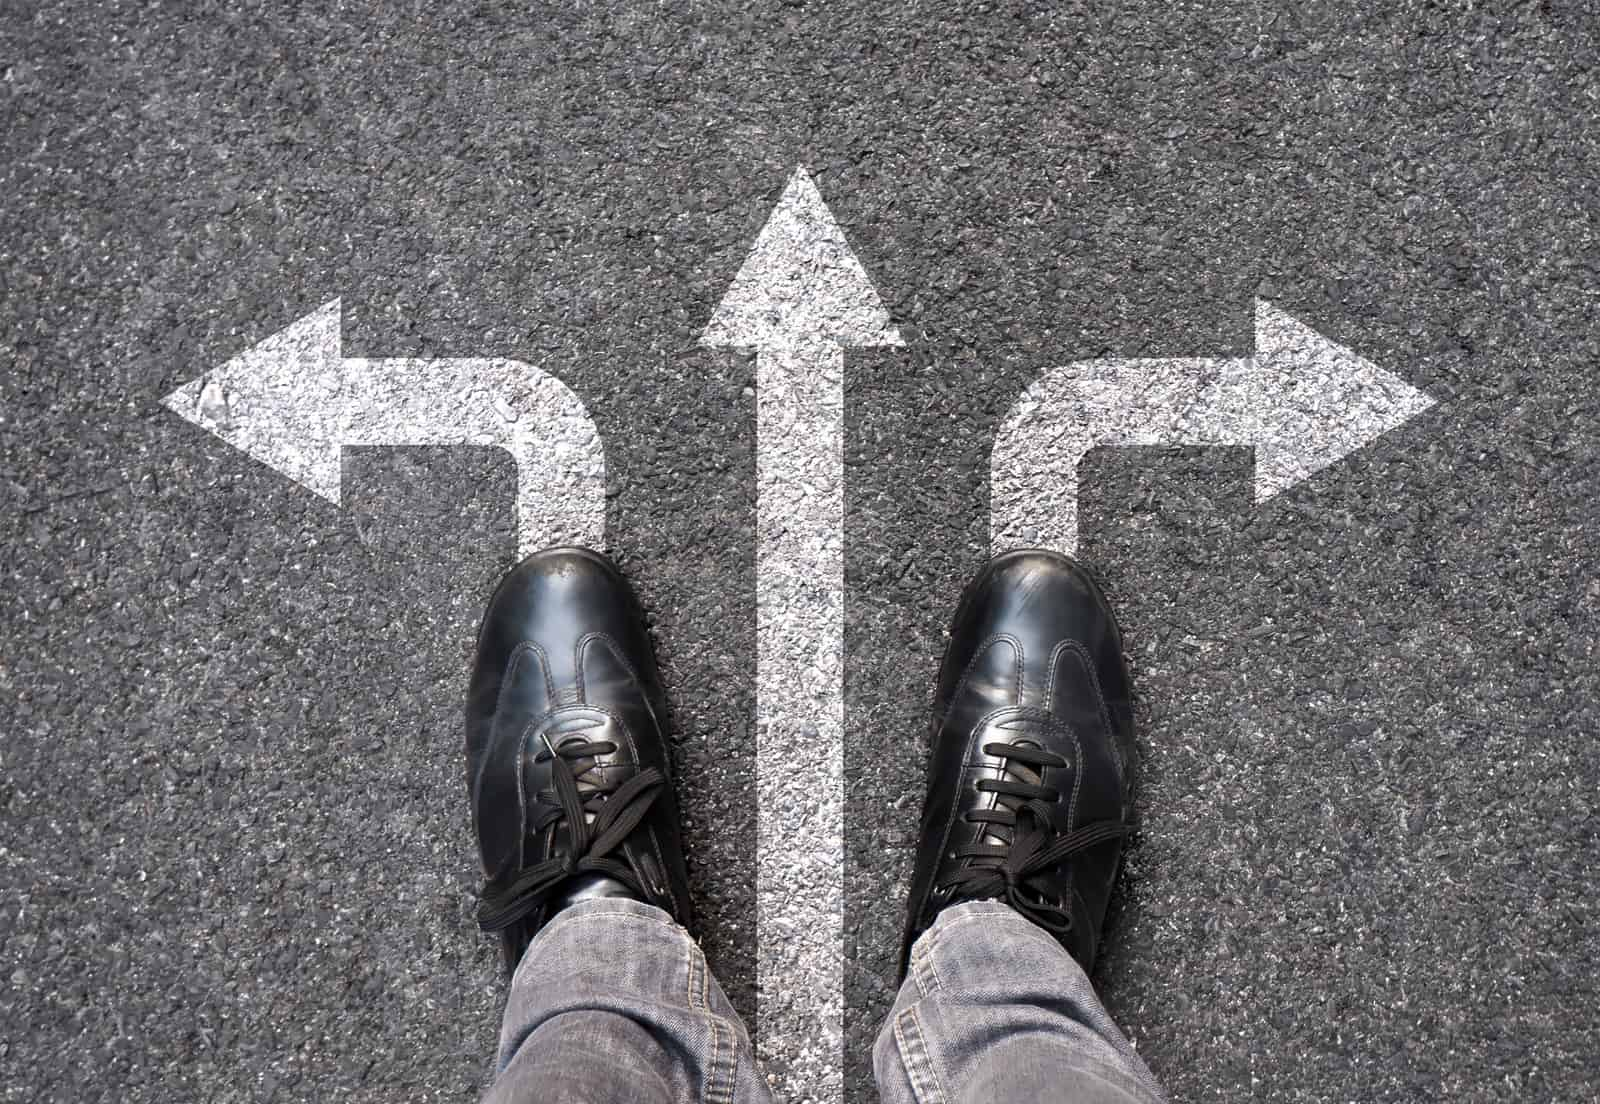 Feet and arrows on road background. Selfie feet above. Businessman standing on pathway with three direction arrows choice or move forward. Top view of business shoes walking. Motivation and growth.